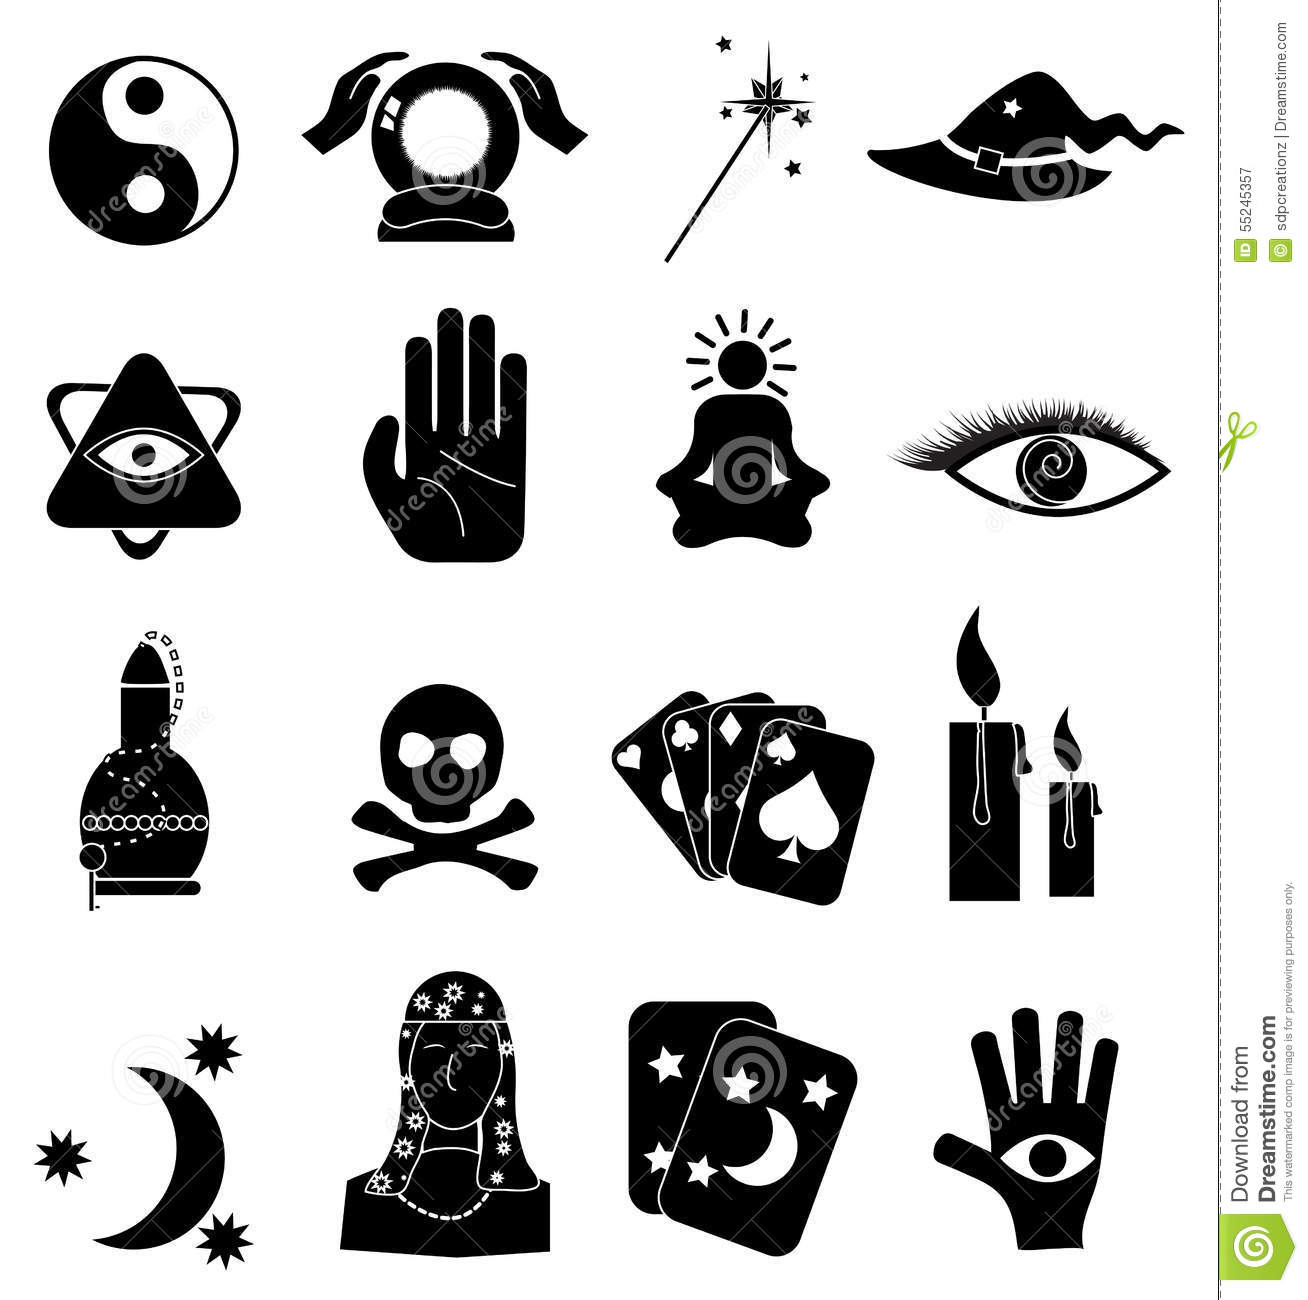 fortune teller icons set stock vector image 55245357. Black Bedroom Furniture Sets. Home Design Ideas